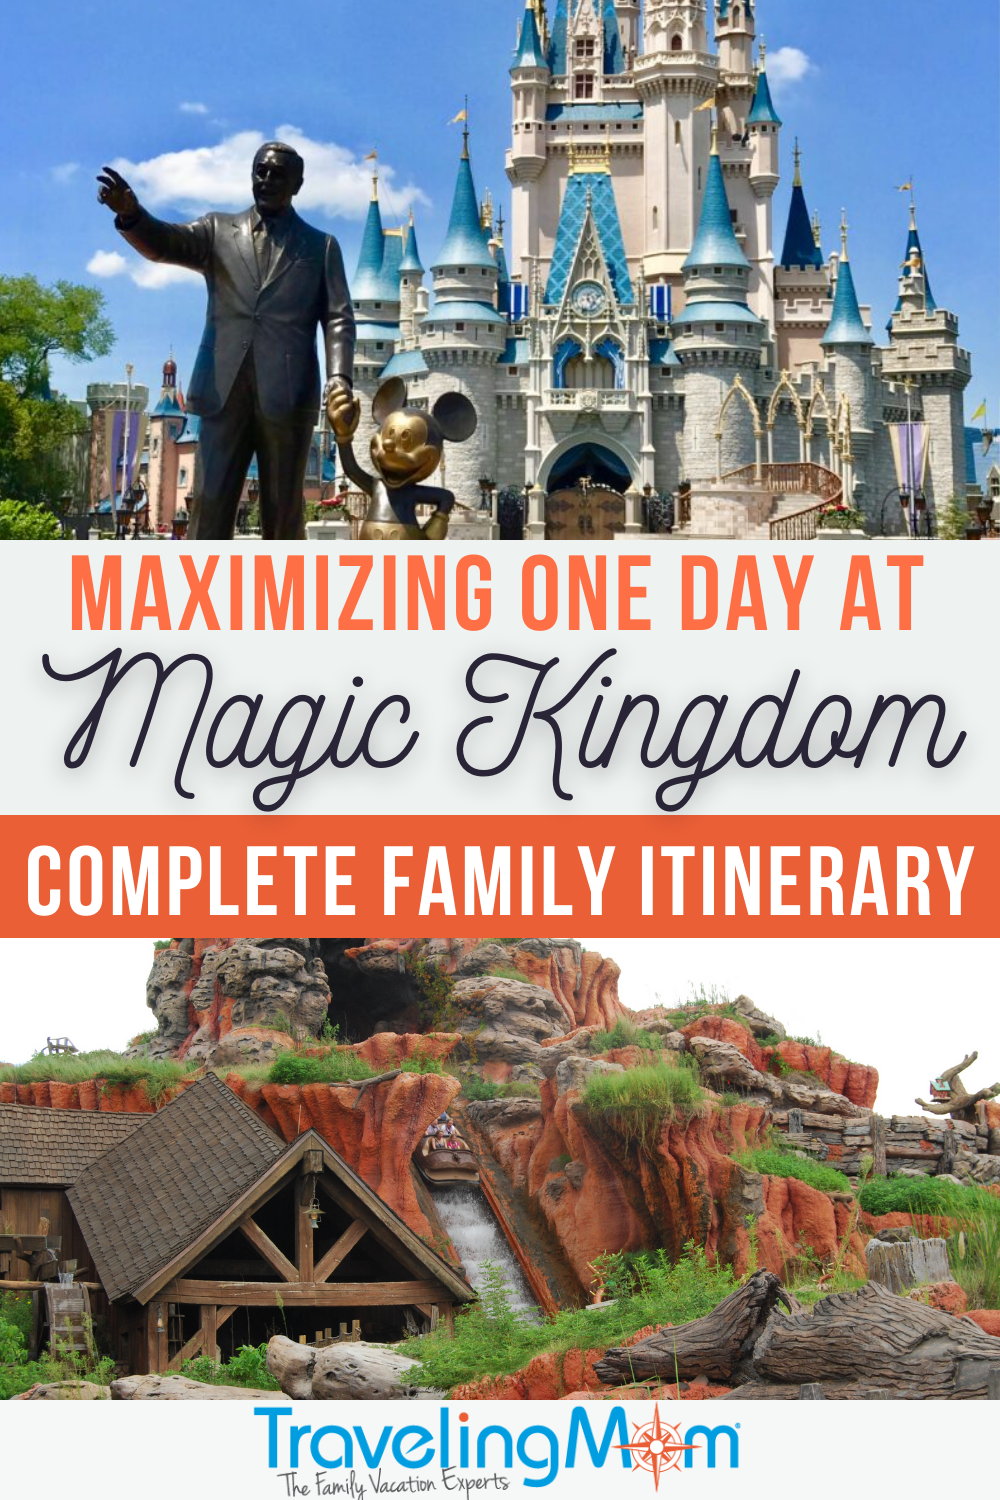 text on pin maximizing one day at magic kingdom complete family itinerary top image castle bottom image splash mountain